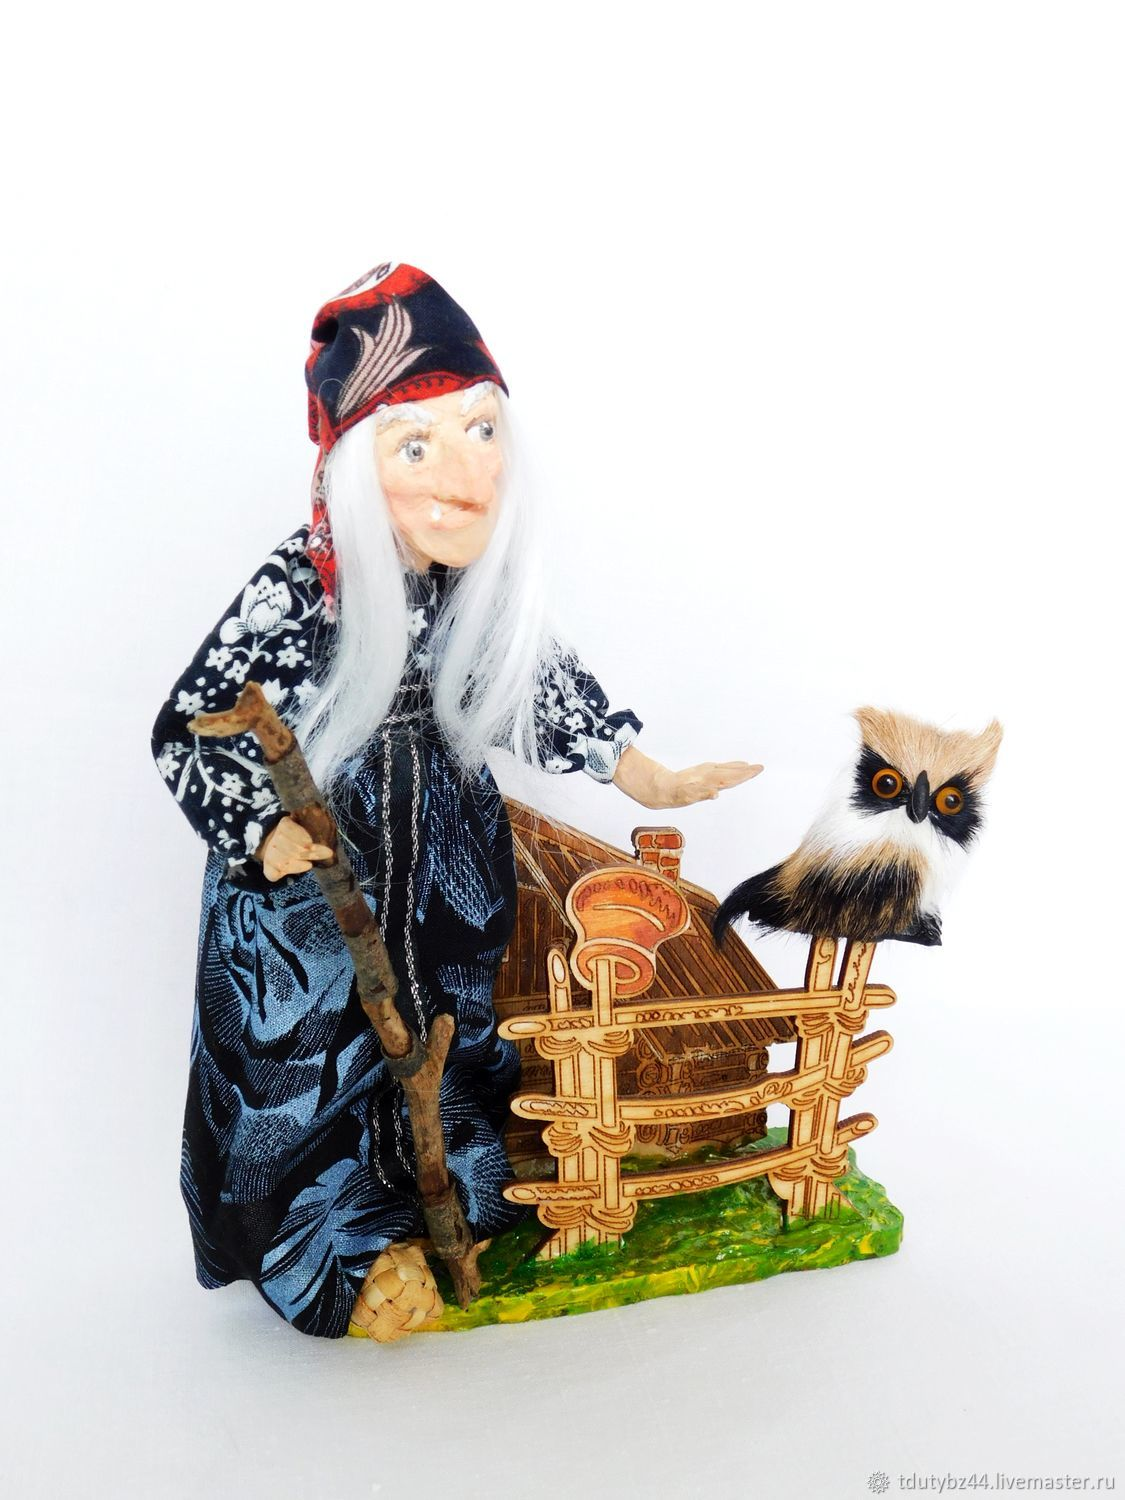 BABA YAGA author's collectible doll, Dolls, Moscow,  Фото №1